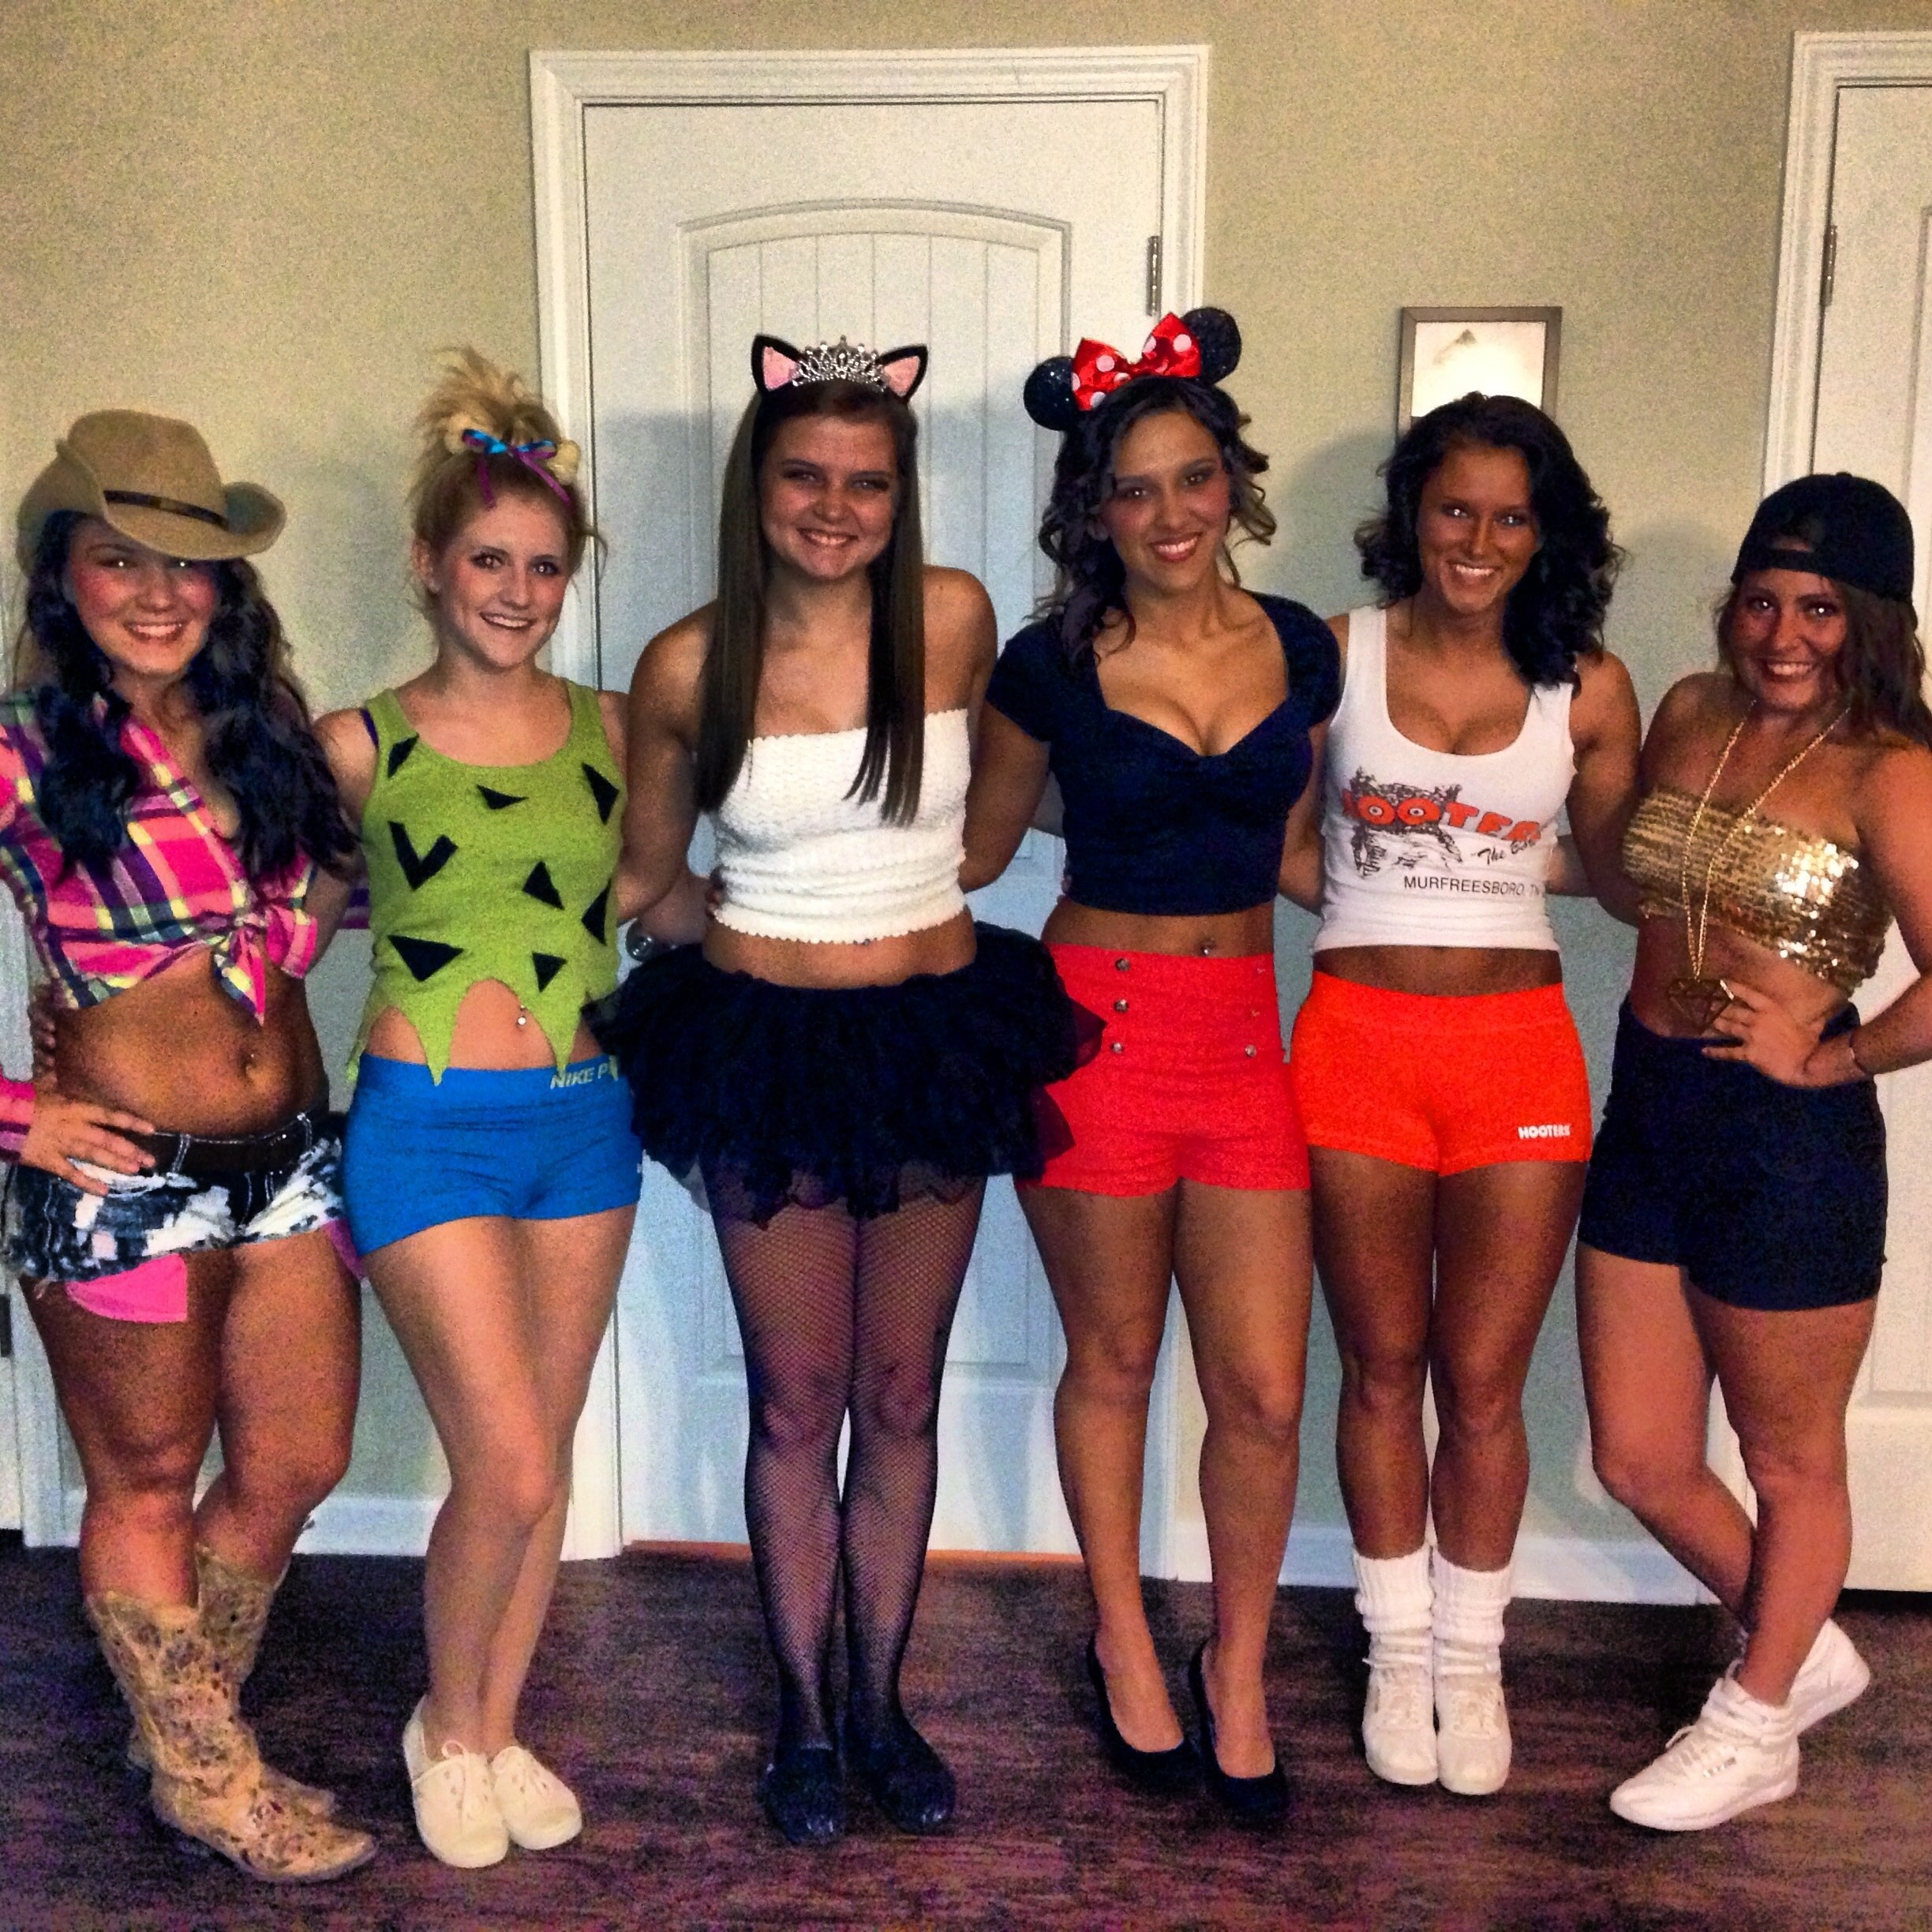 10 Fashionable Cute Halloween Costume Ideas For College Girls 11 costumes you probably saw on your campus this weekend 1 2020